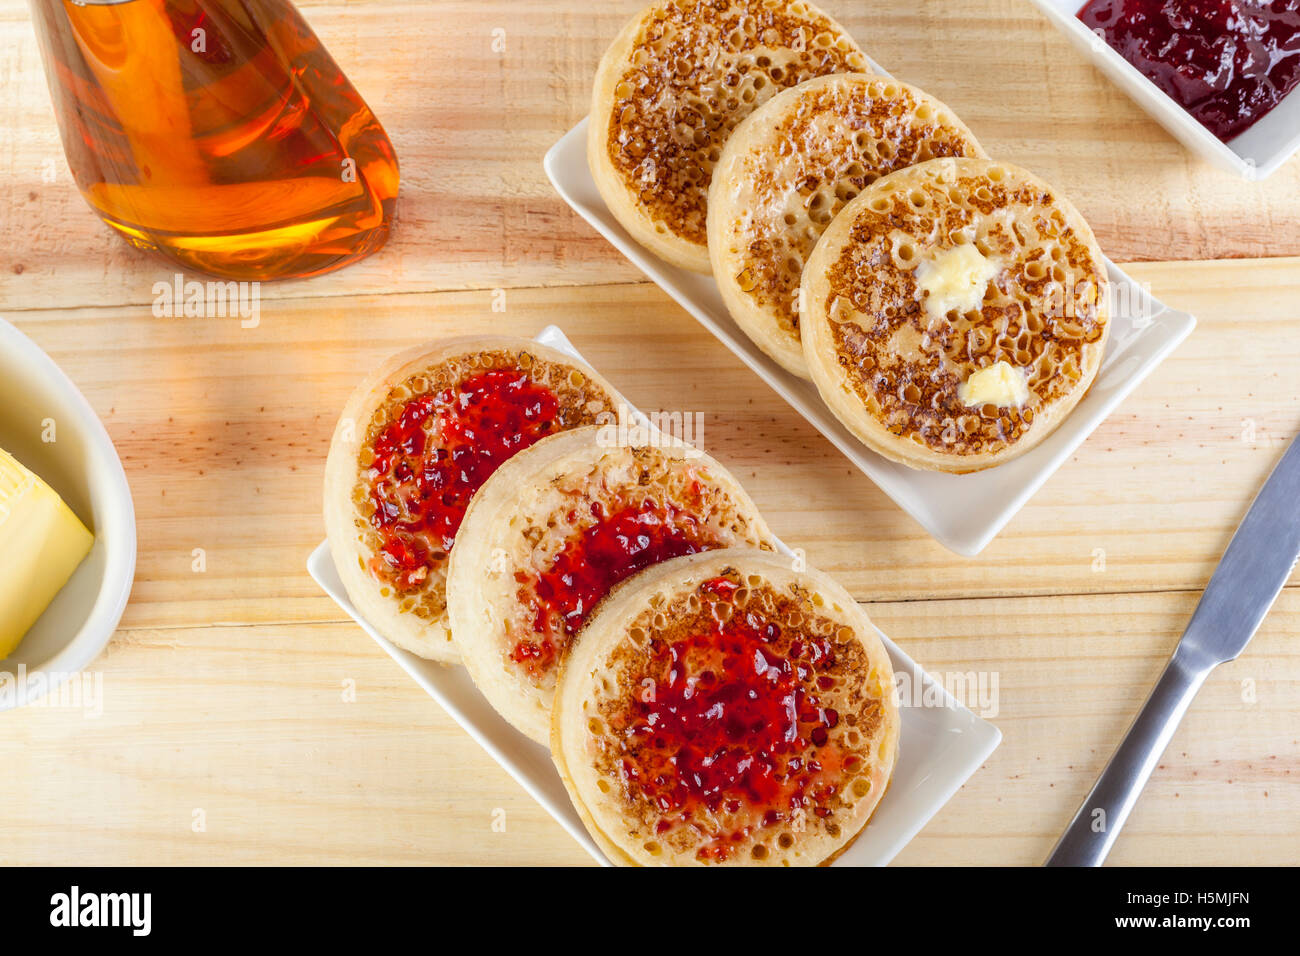 Freshly toasted crumpets on rectangular serving dishes with butter and jam laid out on a country table - Stock Image